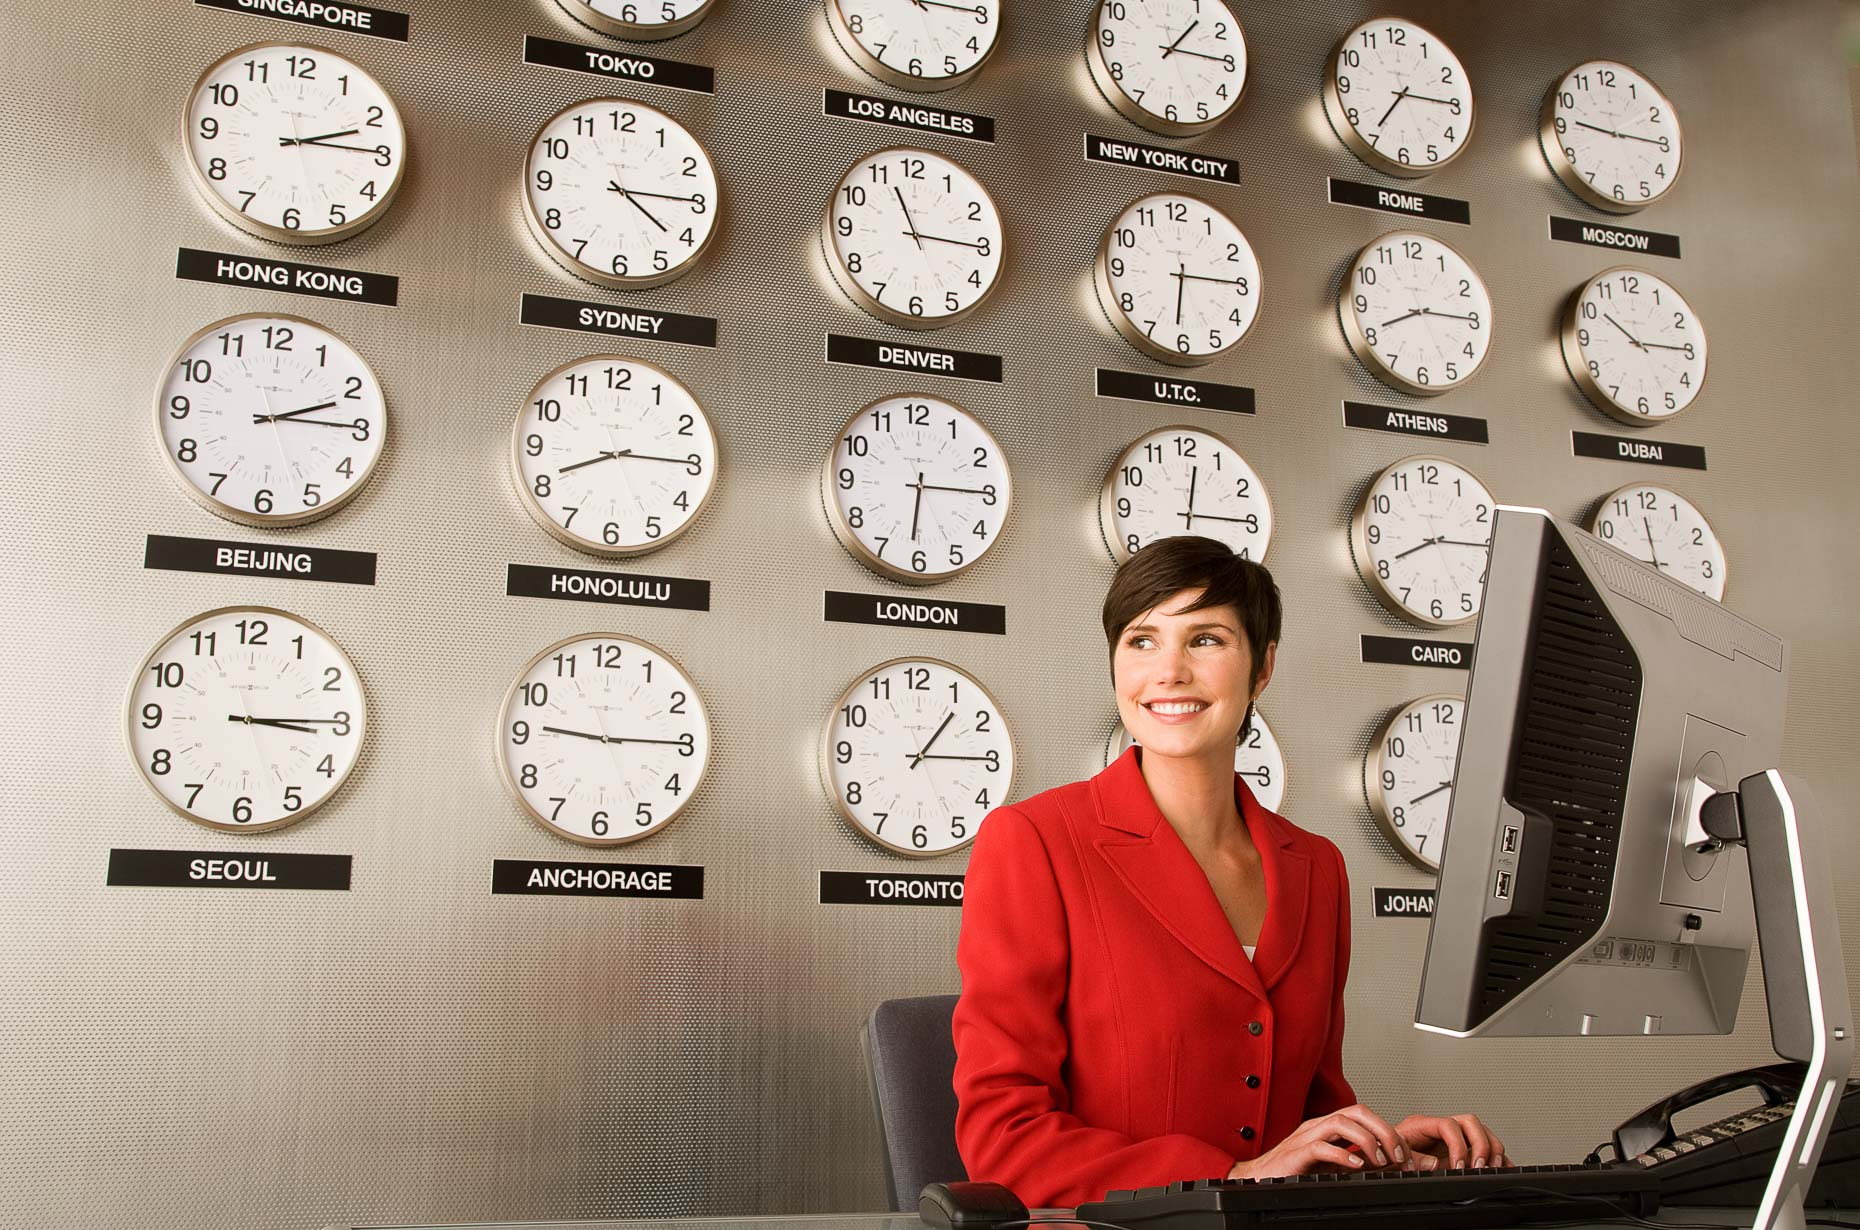 Woman in red dress working at computer with wall of clocks with various international times on them. Corporate, business. David Zaitz Photography.